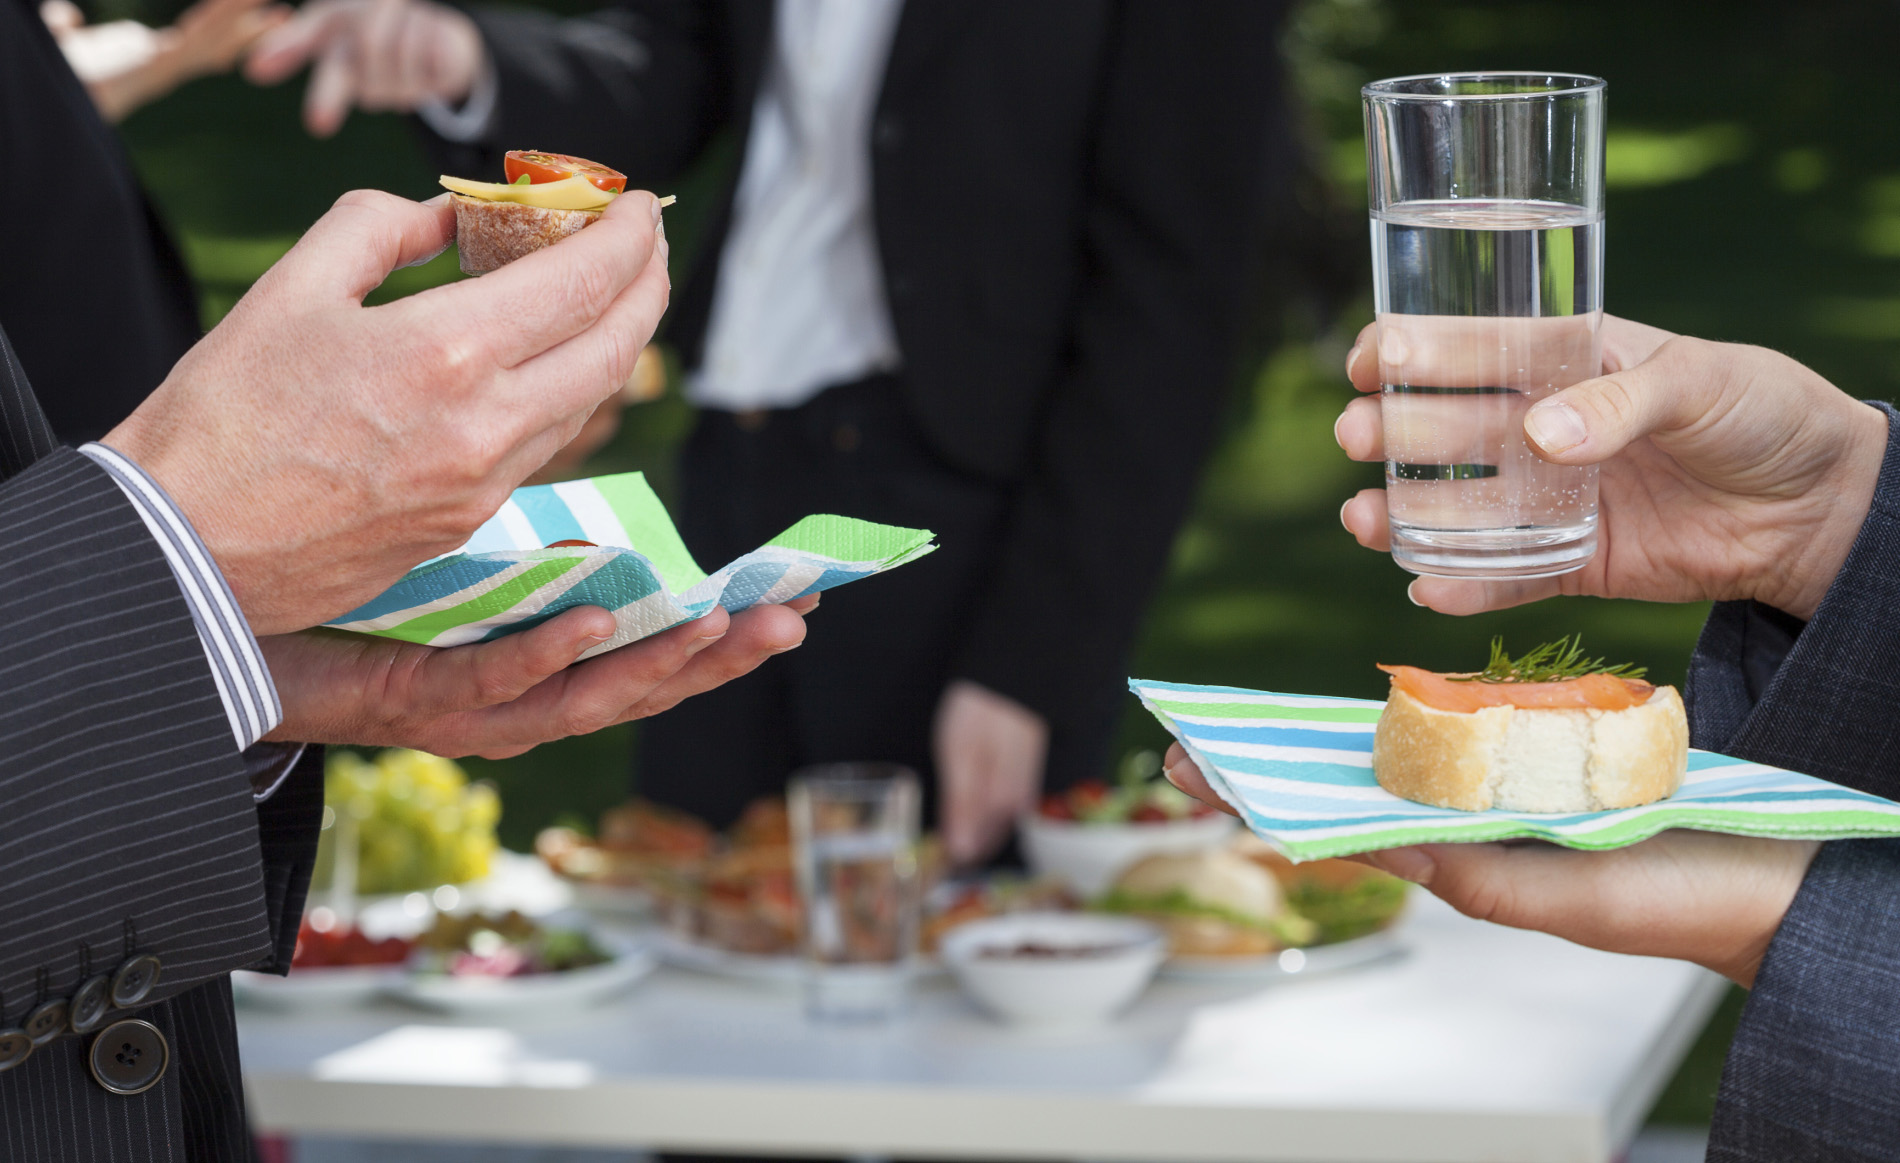 Business-people-eating-and-drinking-at-company-party-crop-ThinkstockPhotos-482929073-KatarzynaBialasiewicz